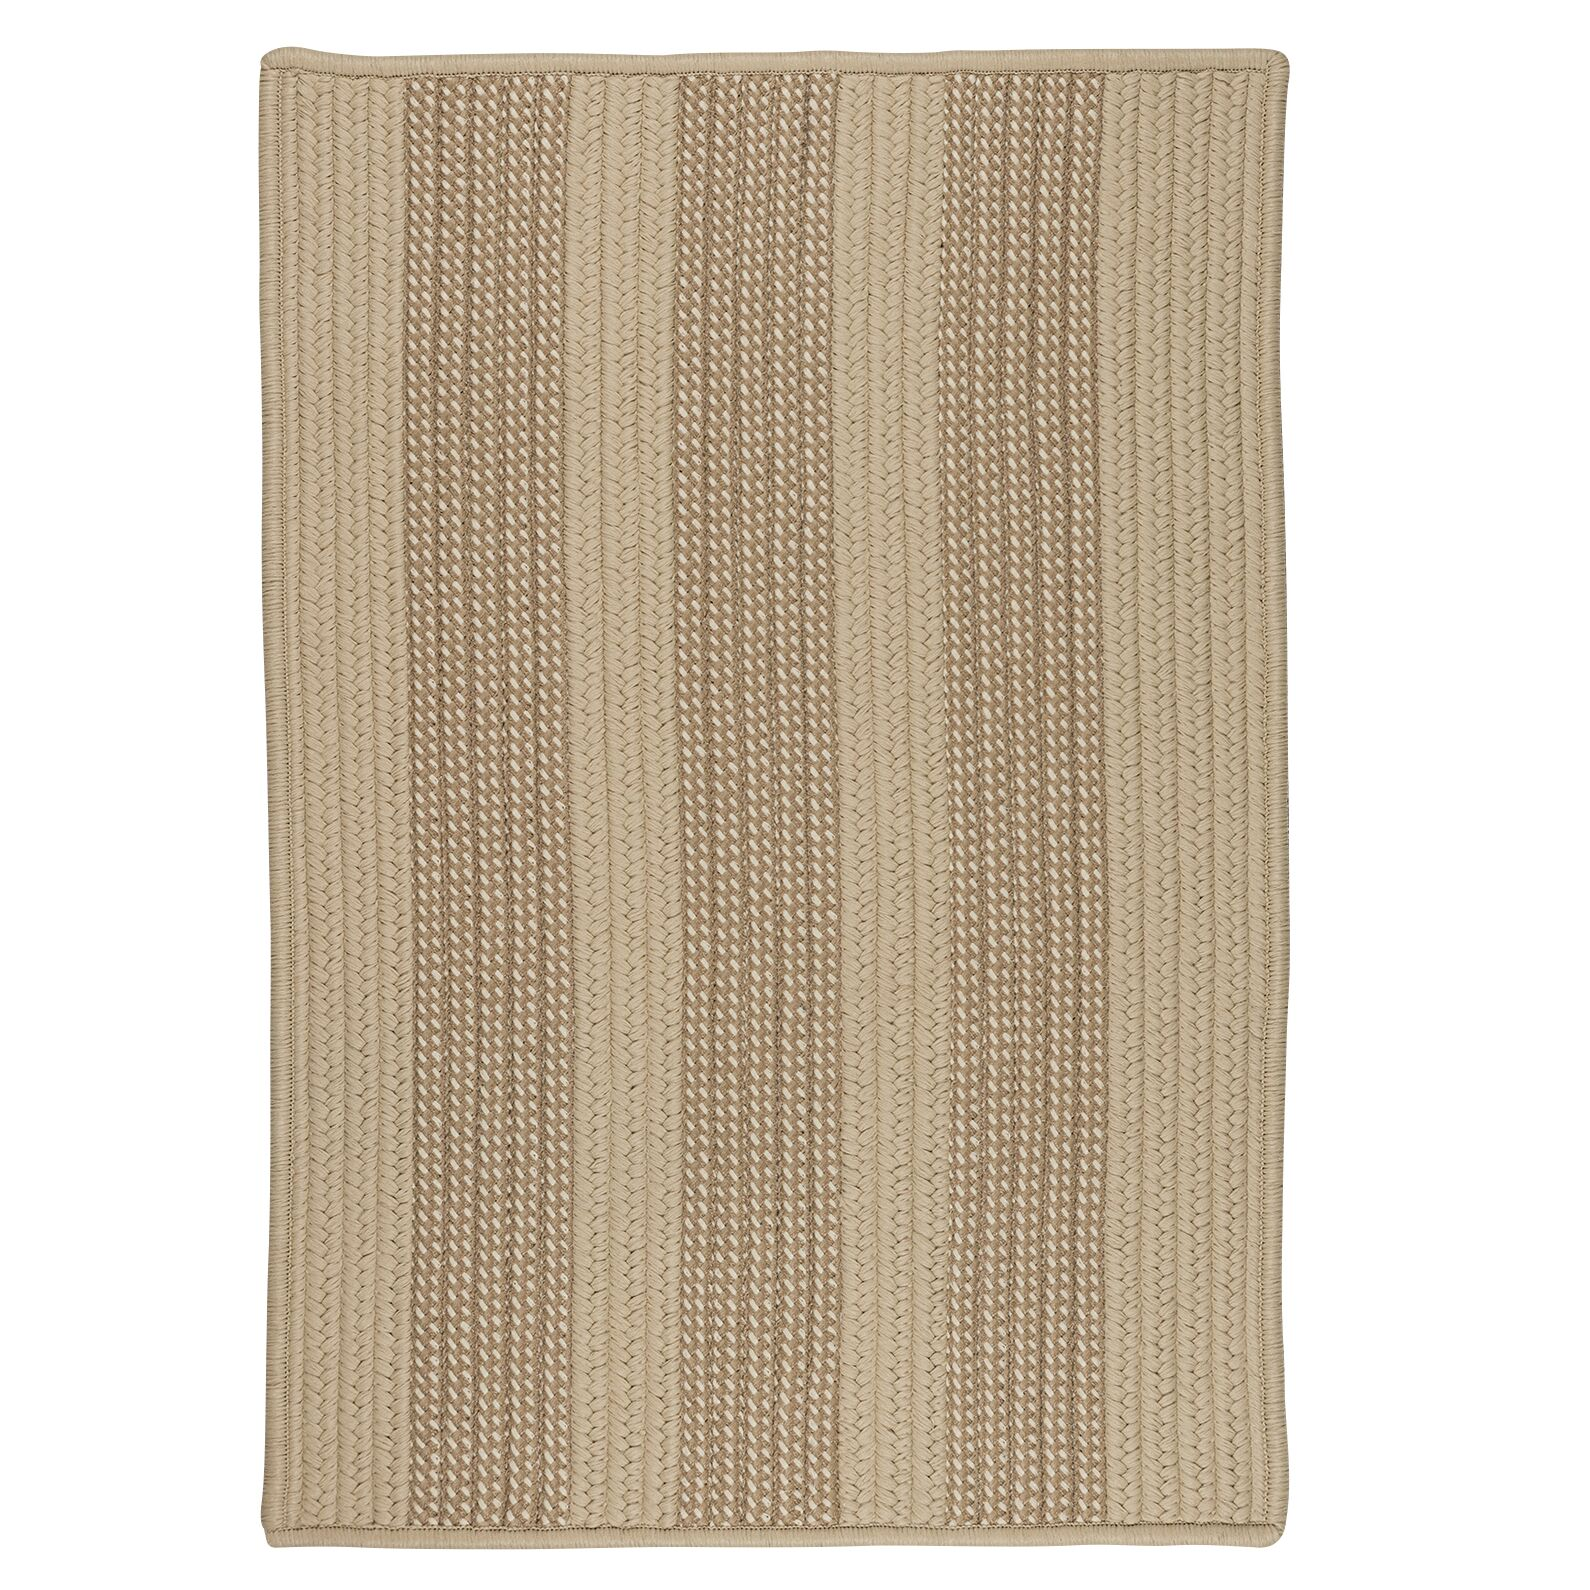 Seal Harbor Natural Indoor/Outdoor Area Rug Rug Size: Square 12'